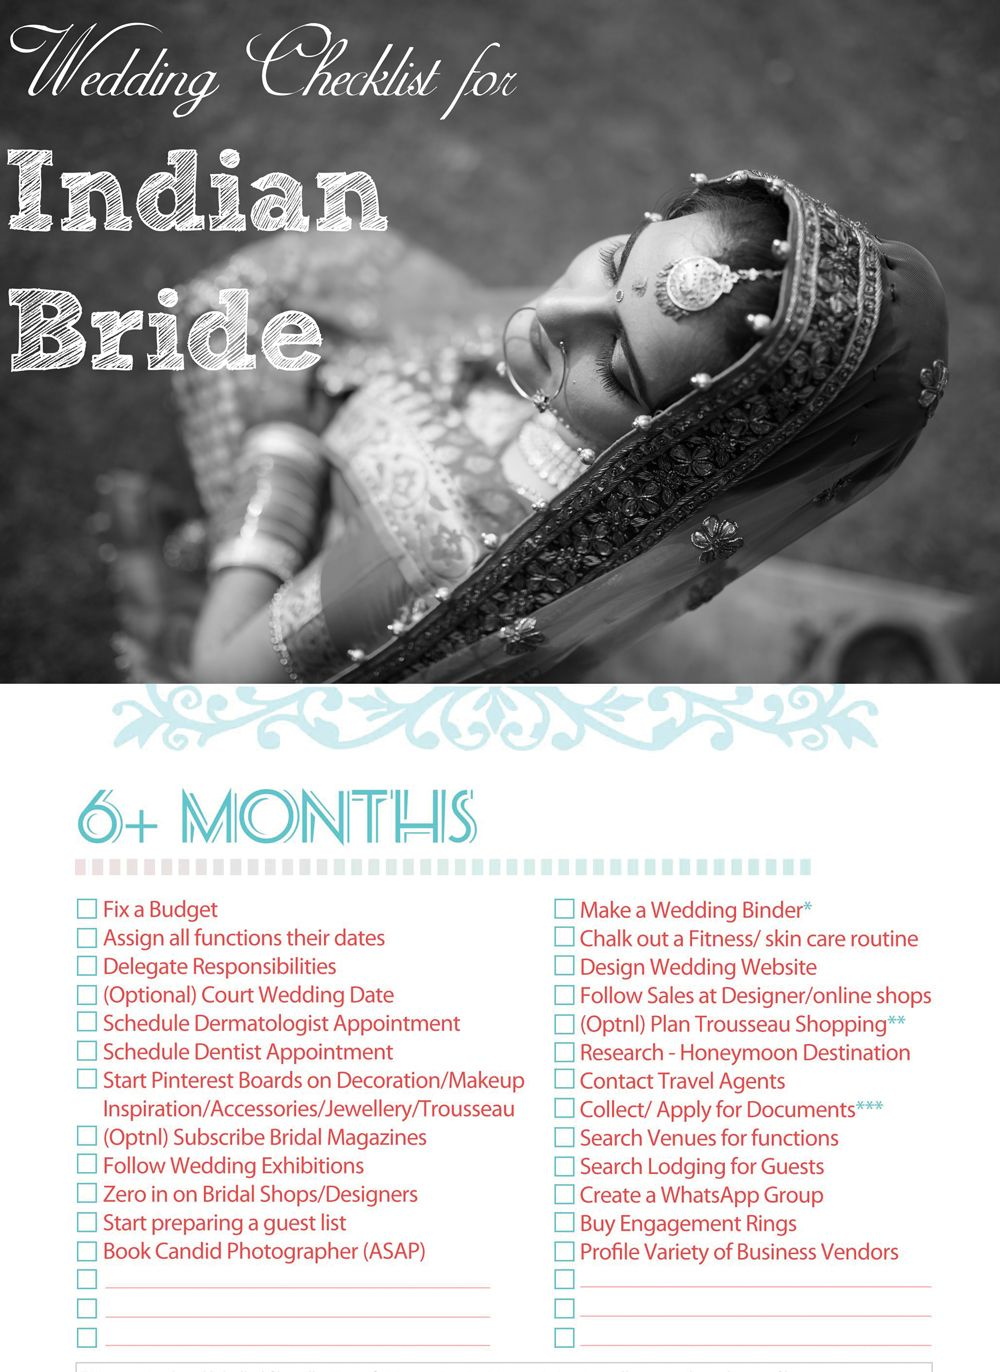 Indian Wedding Checklist For The Bride Indian Bridal Checklist Indian Wedding Pla Wedding Planner Checklist Wedding Checklist Budget Indian Wedding Planning